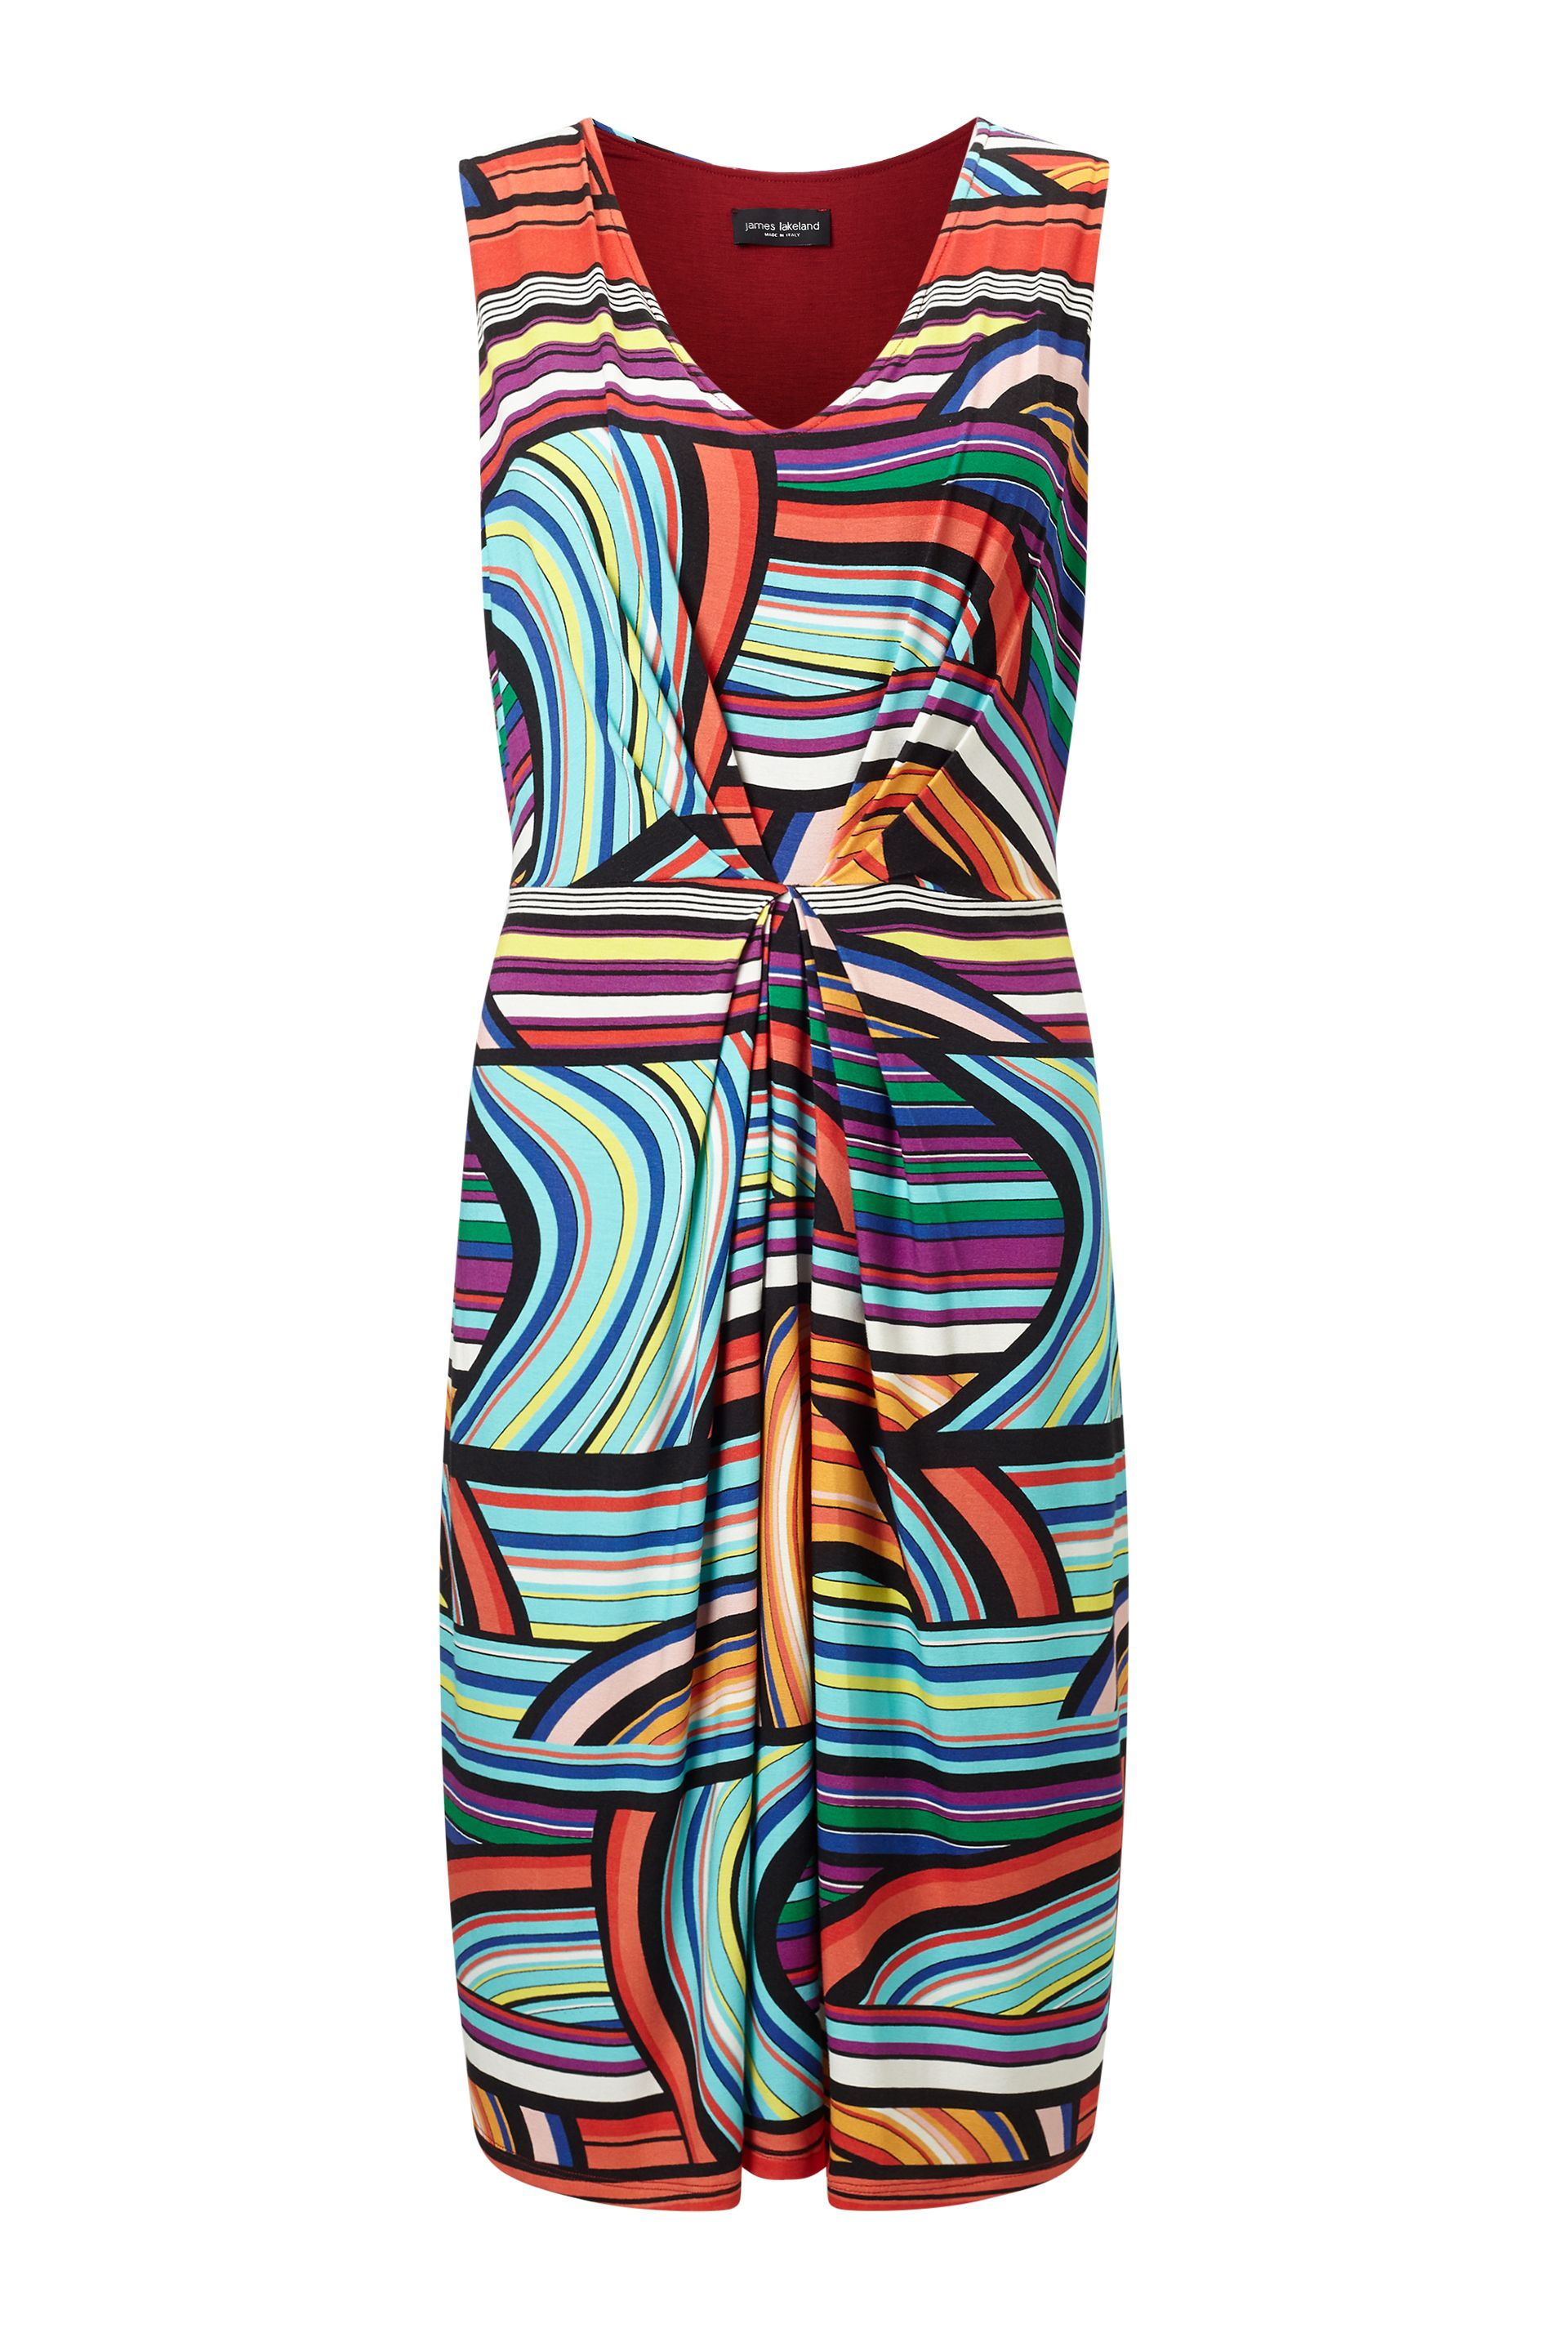 James Lakeland Stripe Print Dress, Multi-Coloured